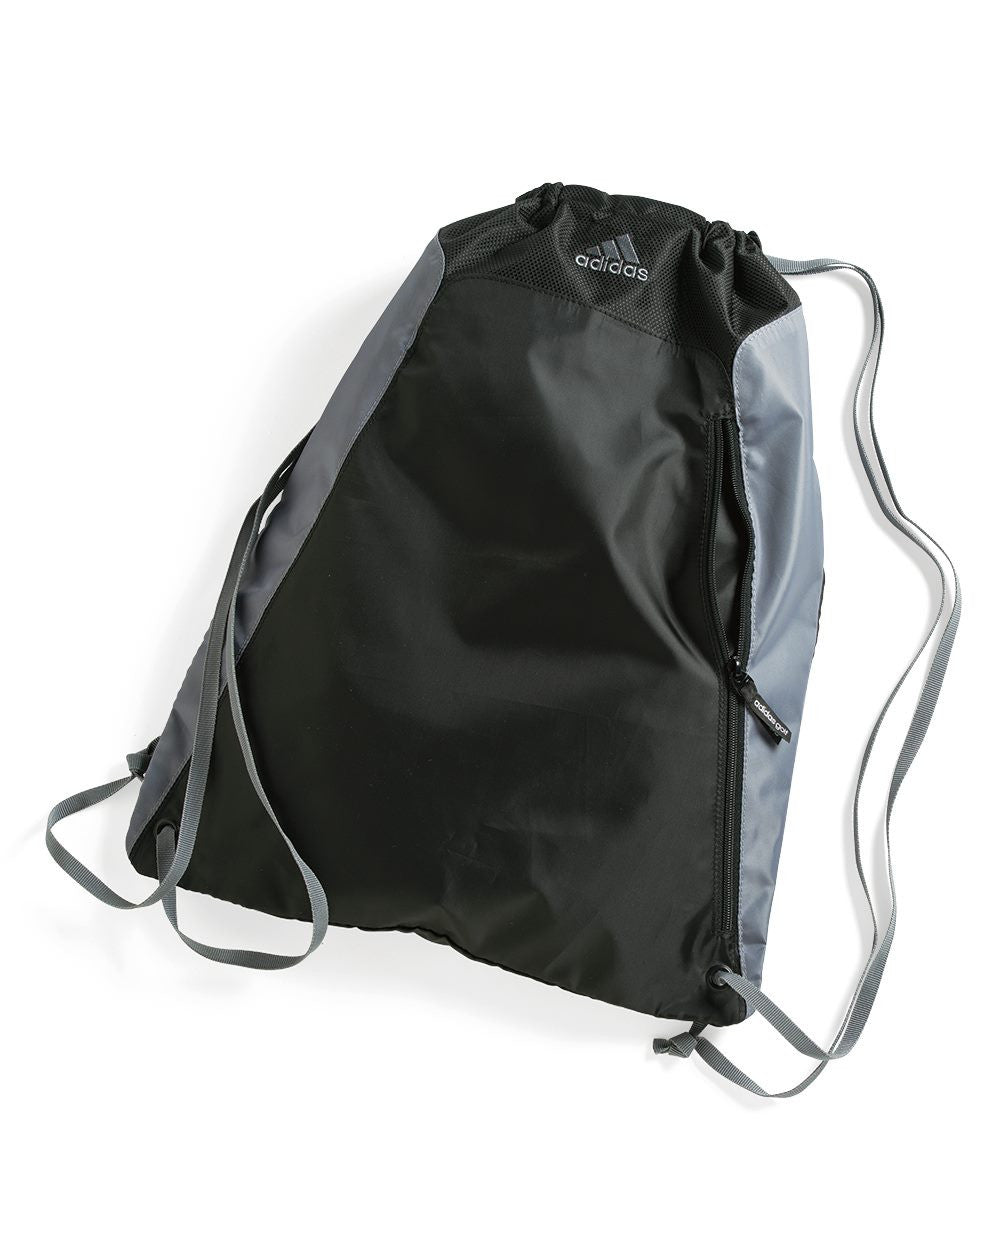 Adidas Gym Sack - Discountedrack.com